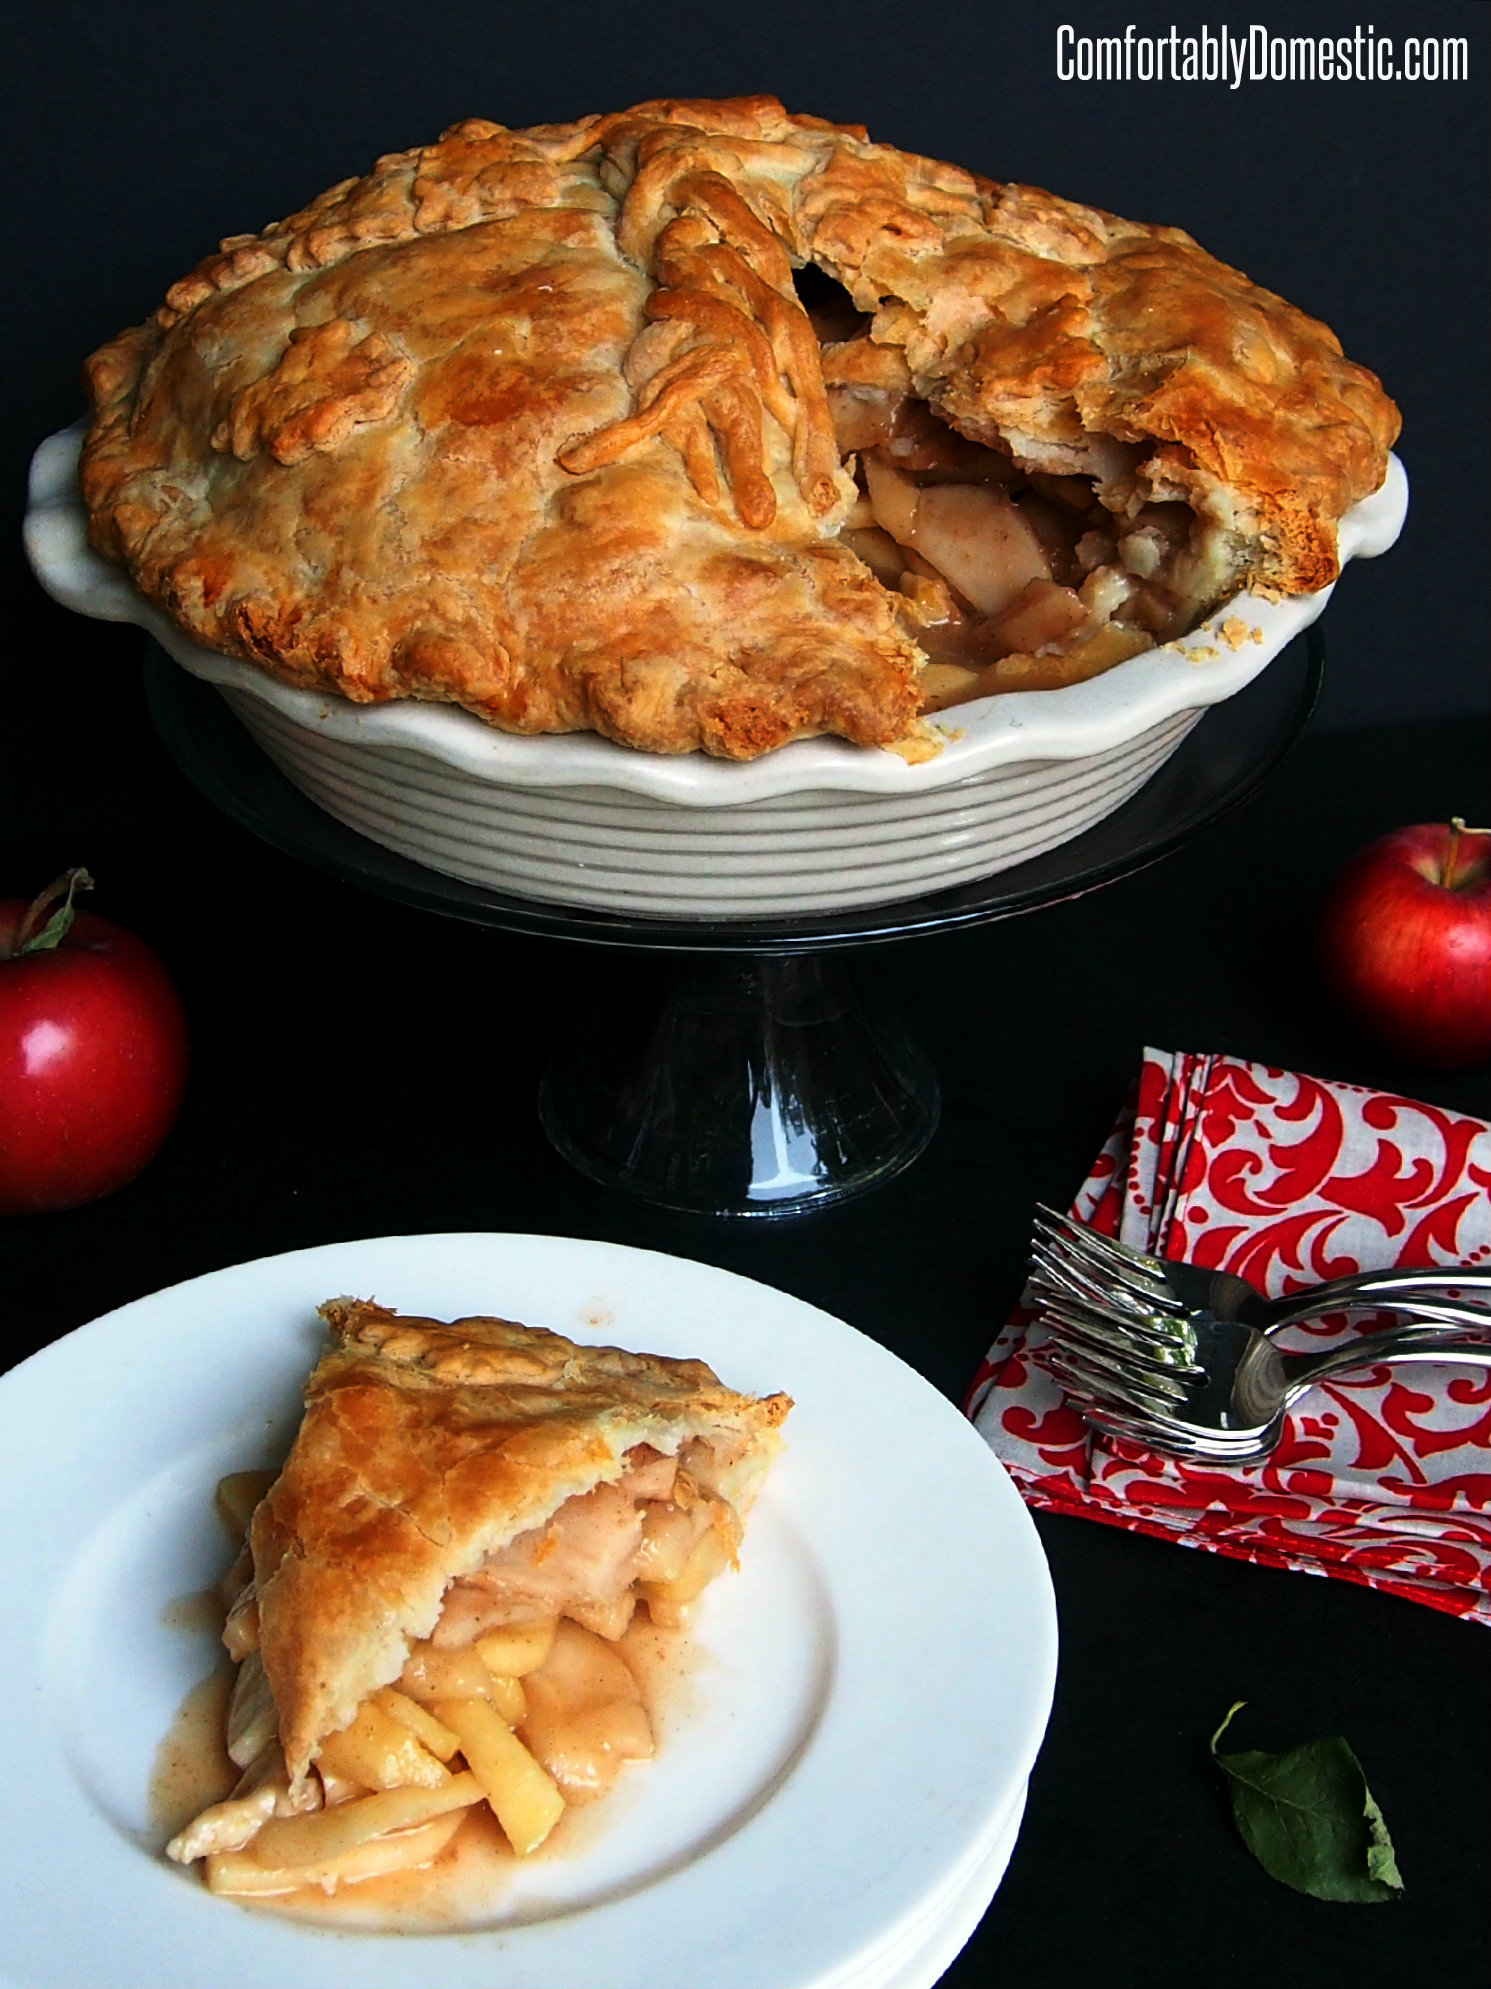 Pie Week Kickoff: Mile High Apple Pie | Comfortably Domestic